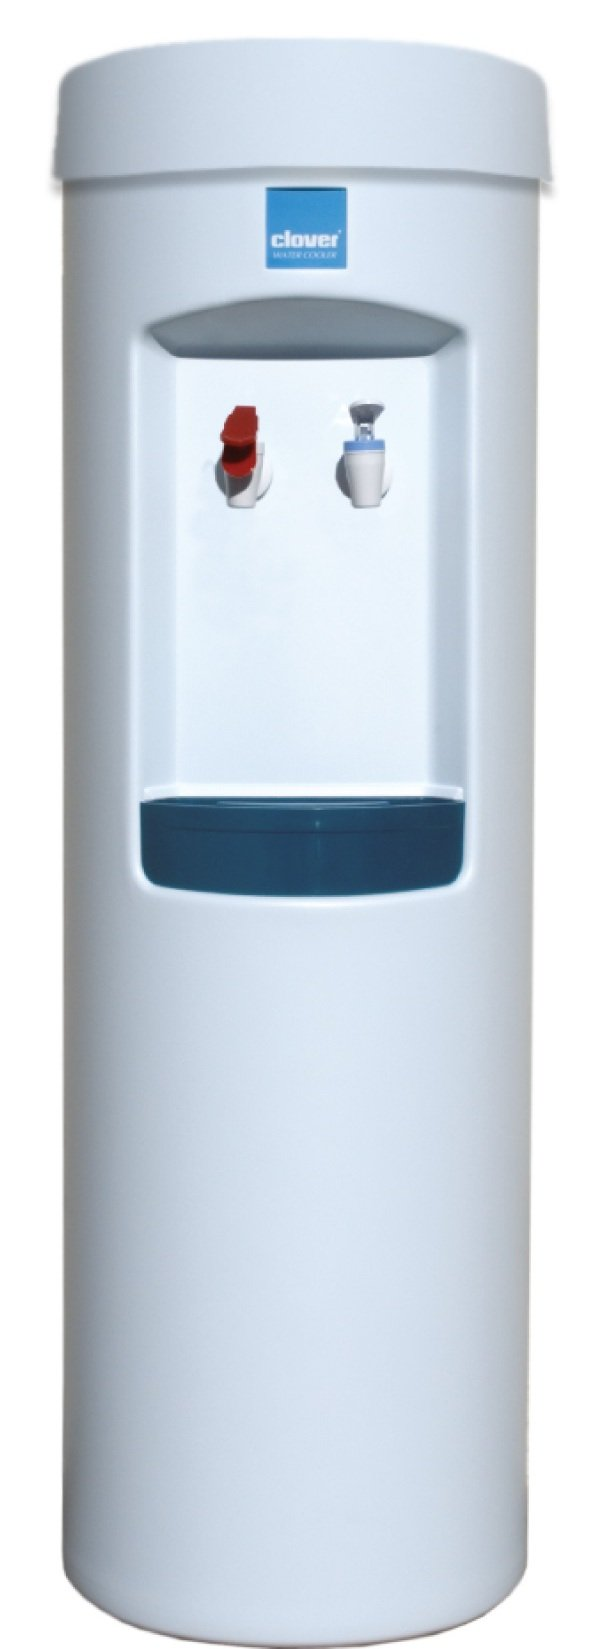 Clover D7A Hot and Cold Bottleless Water Dispenser, White by Clover